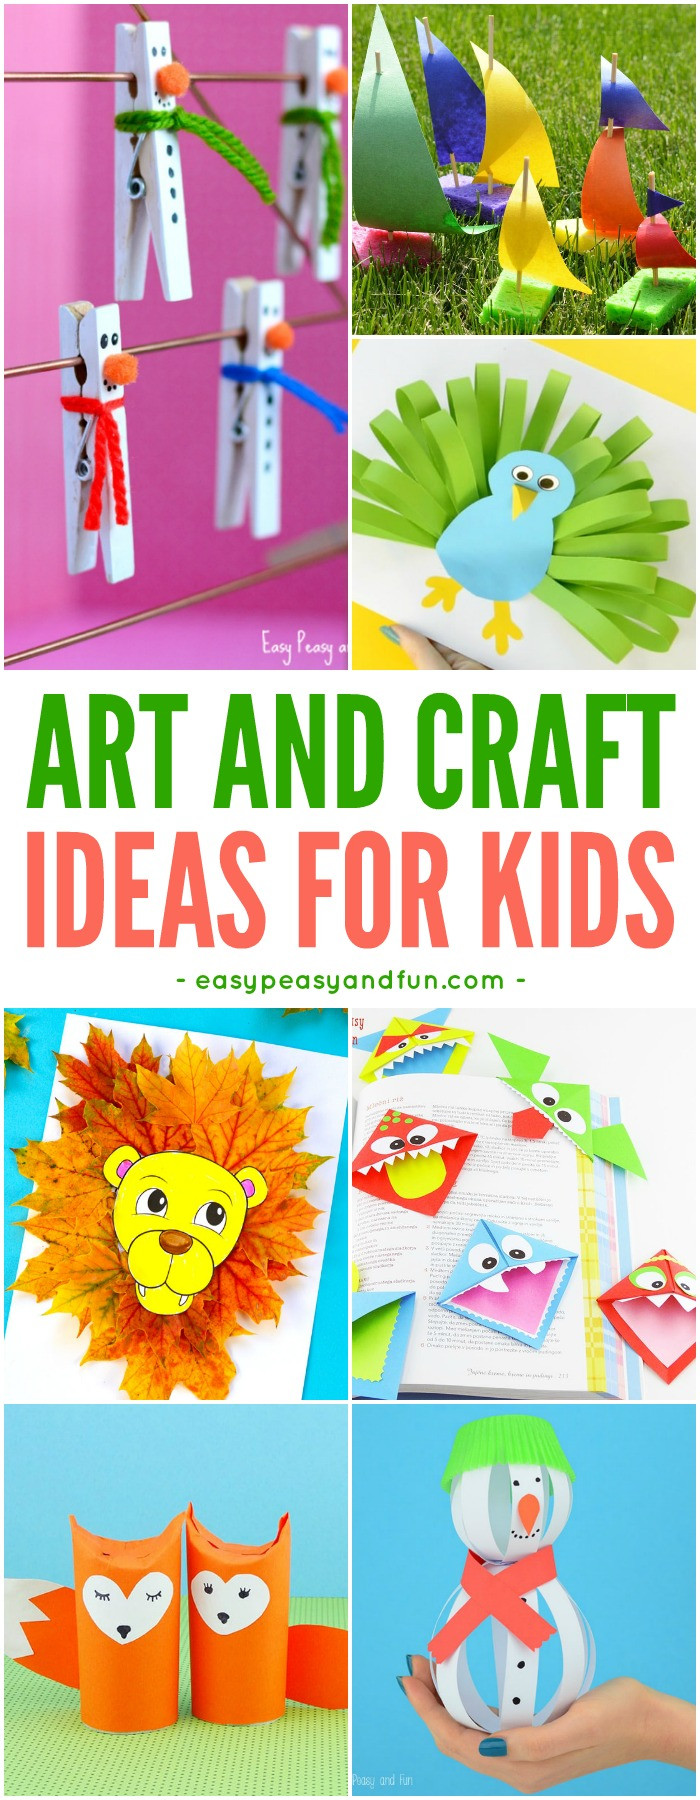 Easy Arts And Crafts For Toddlers  Crafts For Kids Tons of Art and Craft Ideas for Kids to